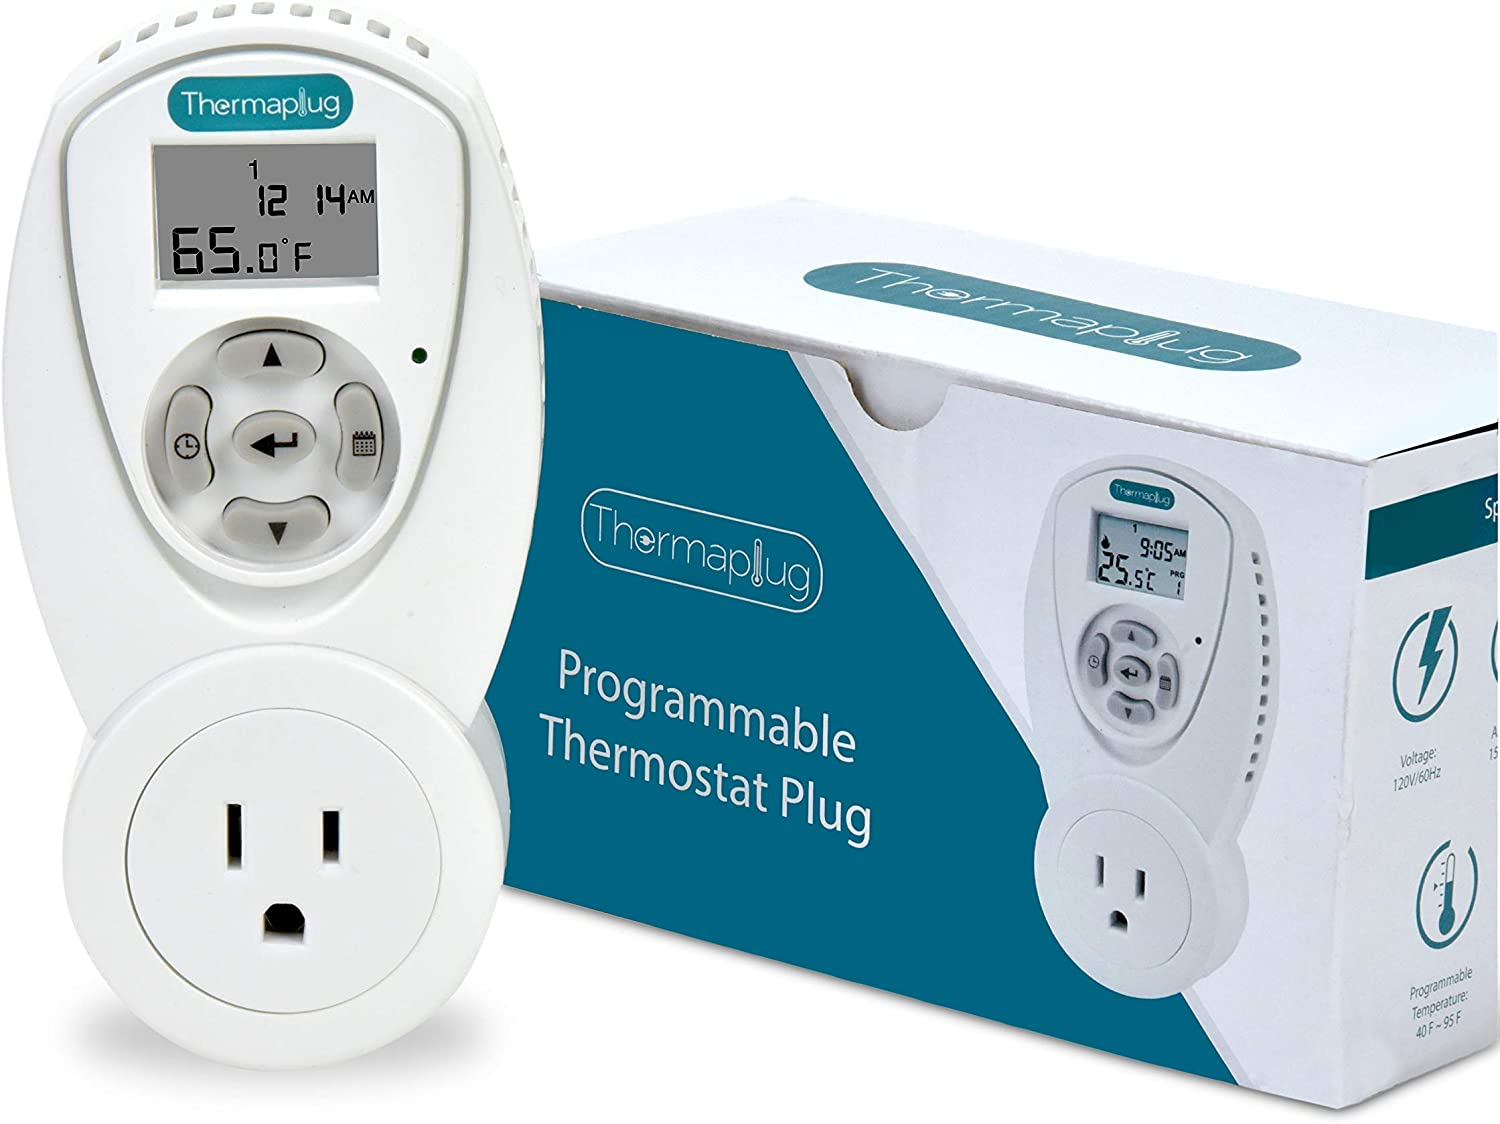 Programmable Thermostat Outlet Plug for Space Heaters and A/Cs, 120v/ 110v 15 amps, Heavy Duty